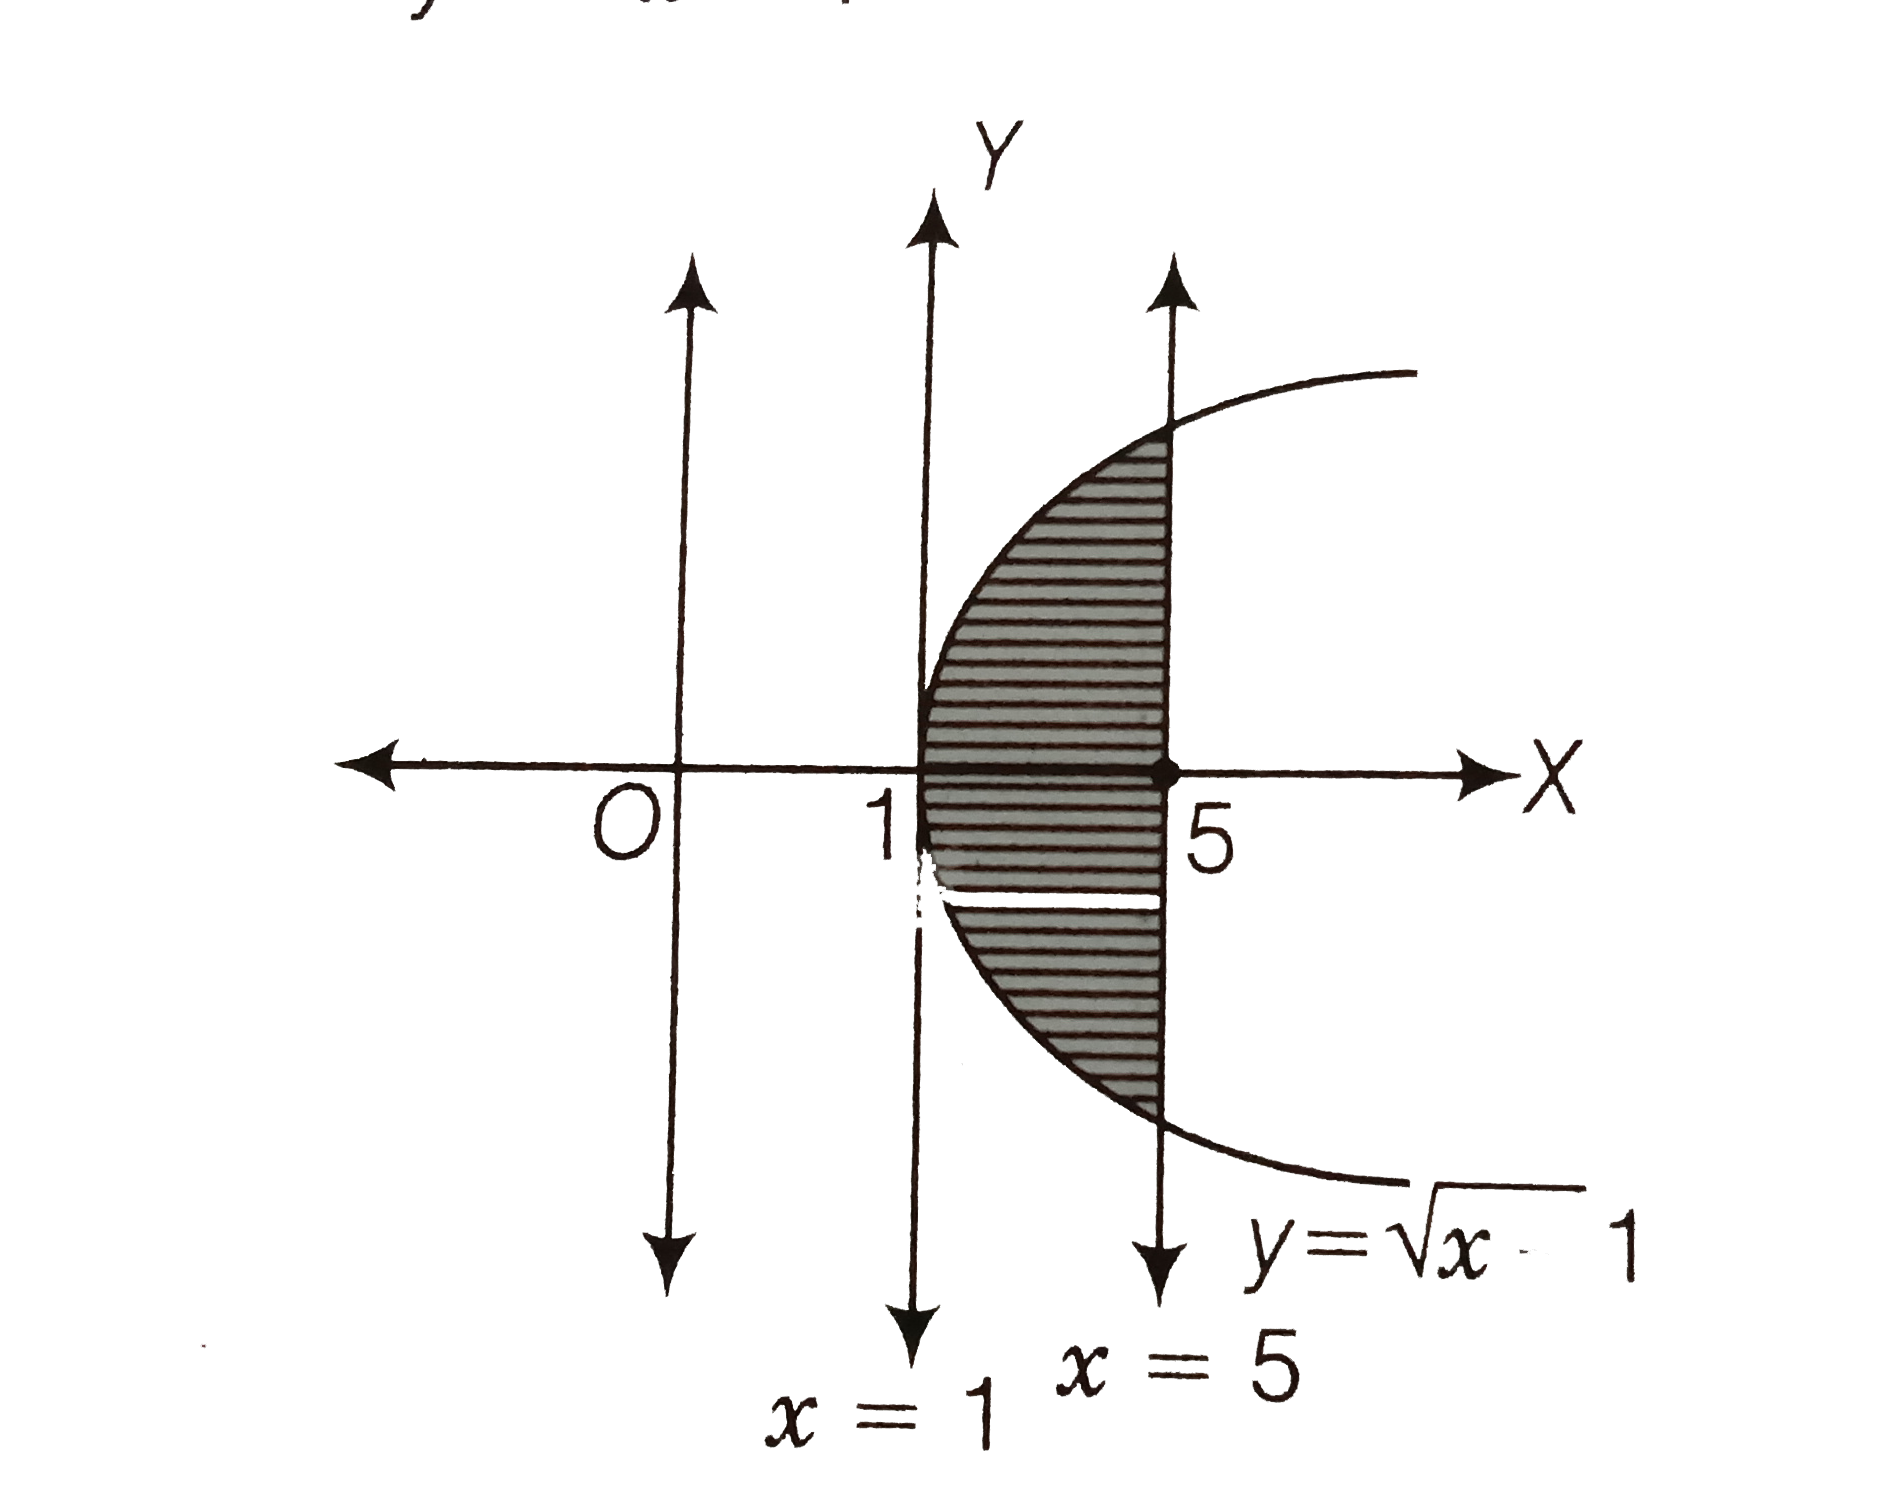 Draw A Rough Sketch Of The Curve Y Sqrtx 1 In The Interval 1